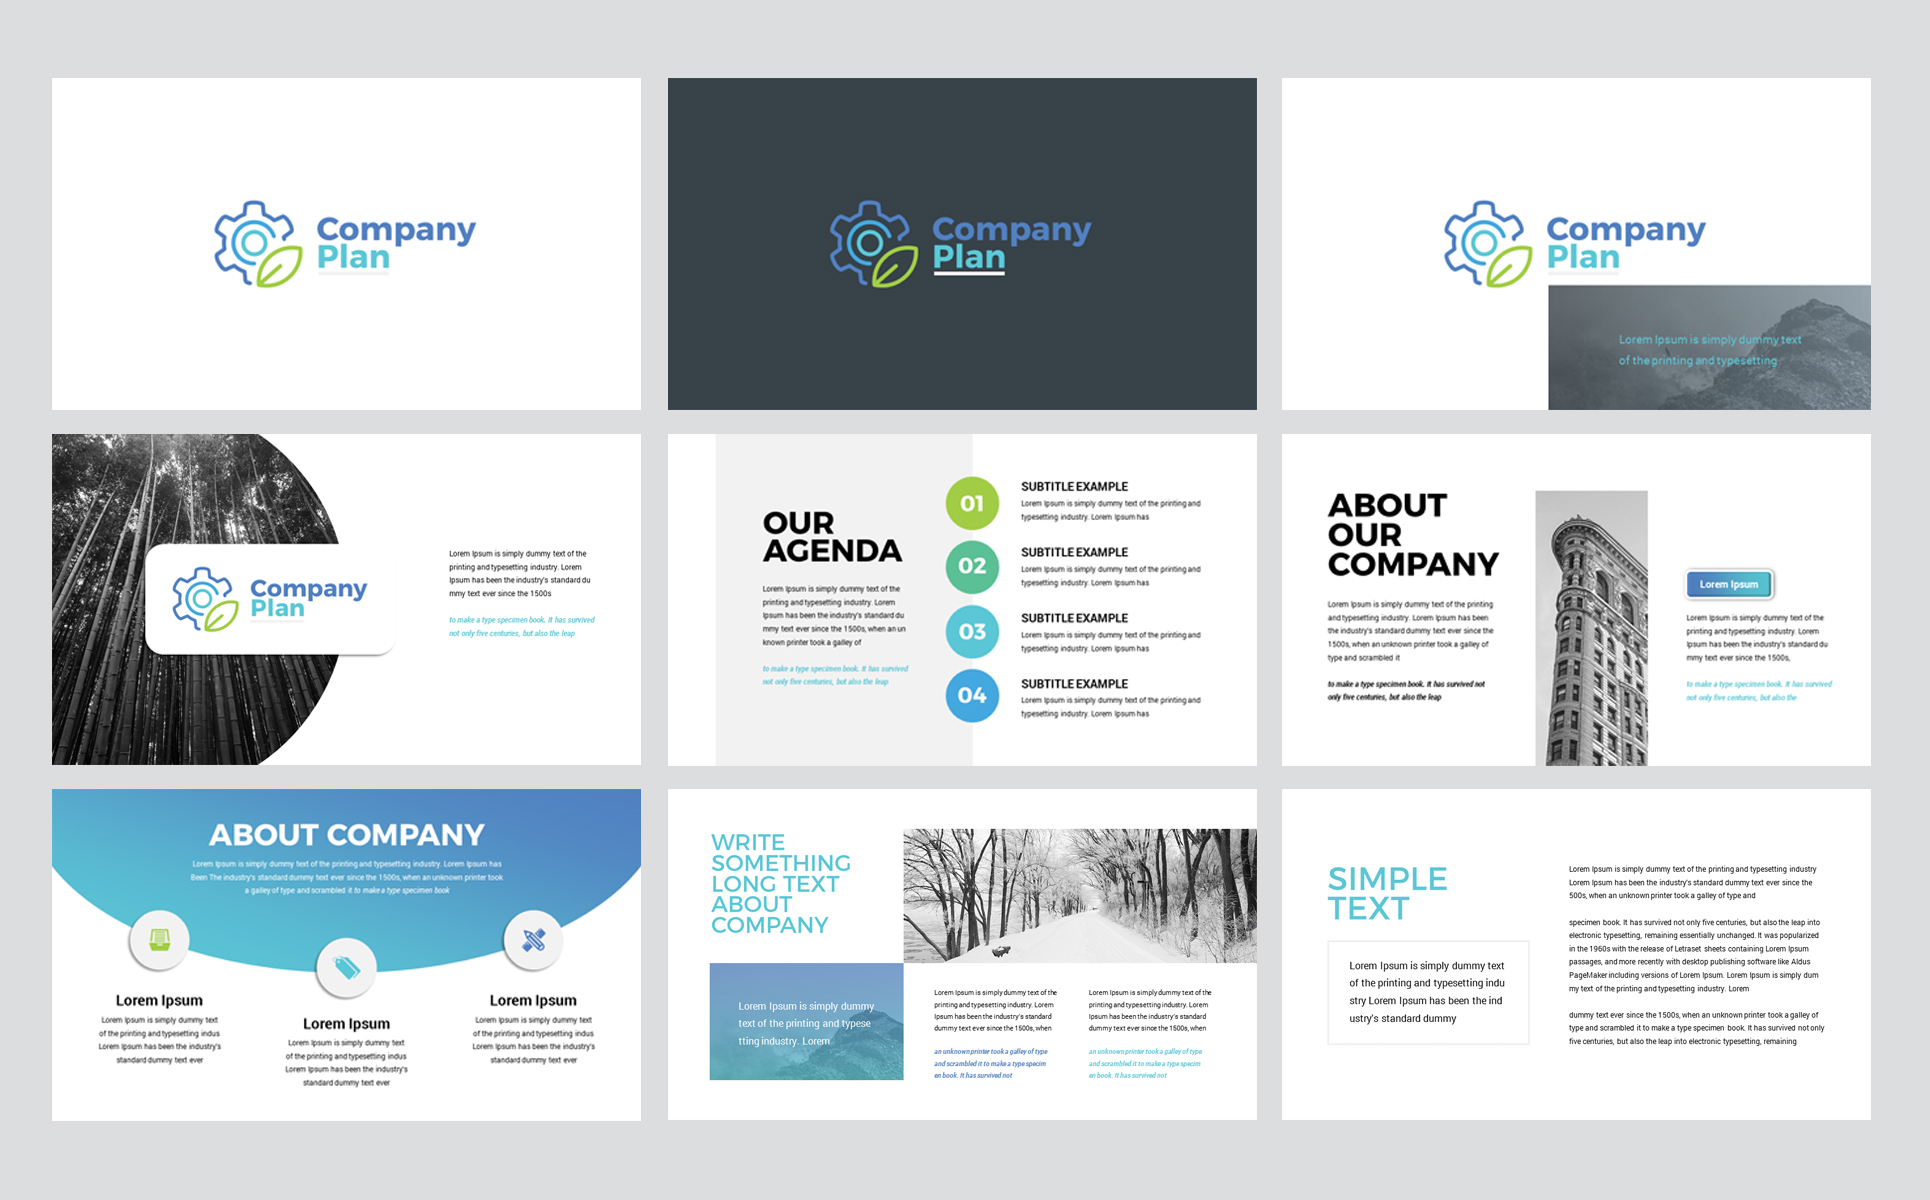 Company Plan - PowerPoint Template